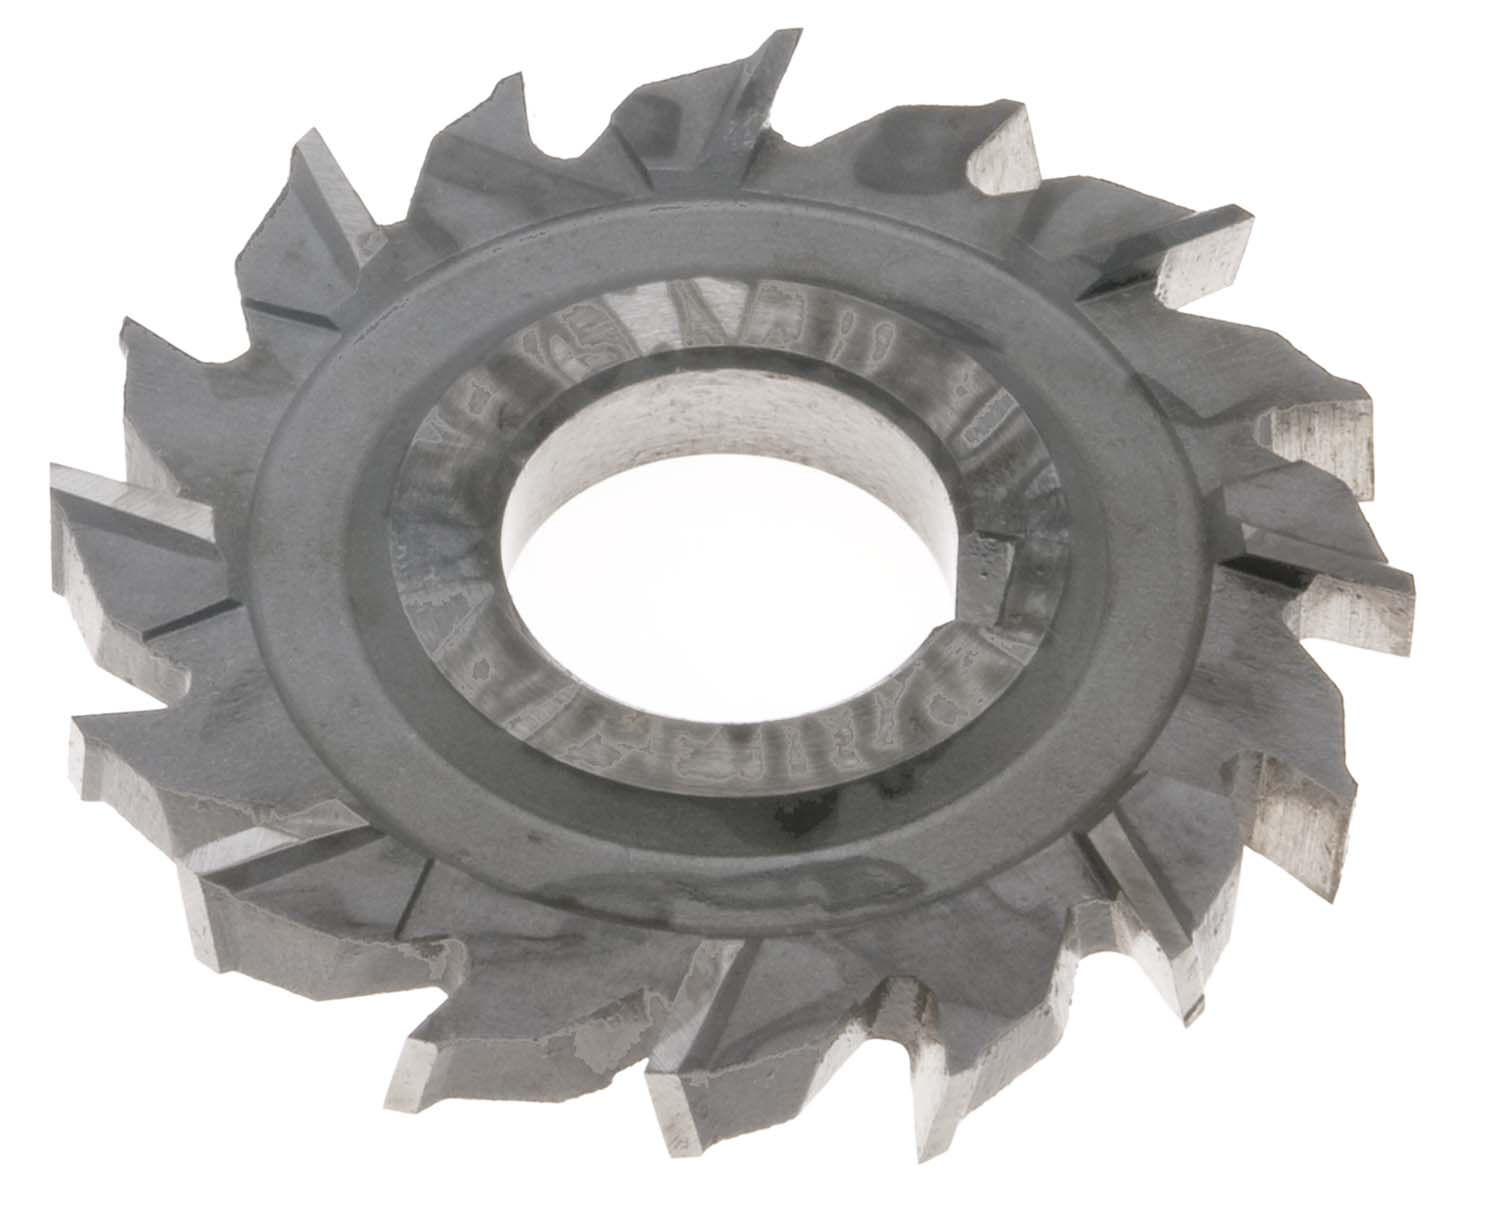 "3-1/2 X 1/2 X 1"" Staggered Tooth Side Milling Cutter, High Speed Steel"